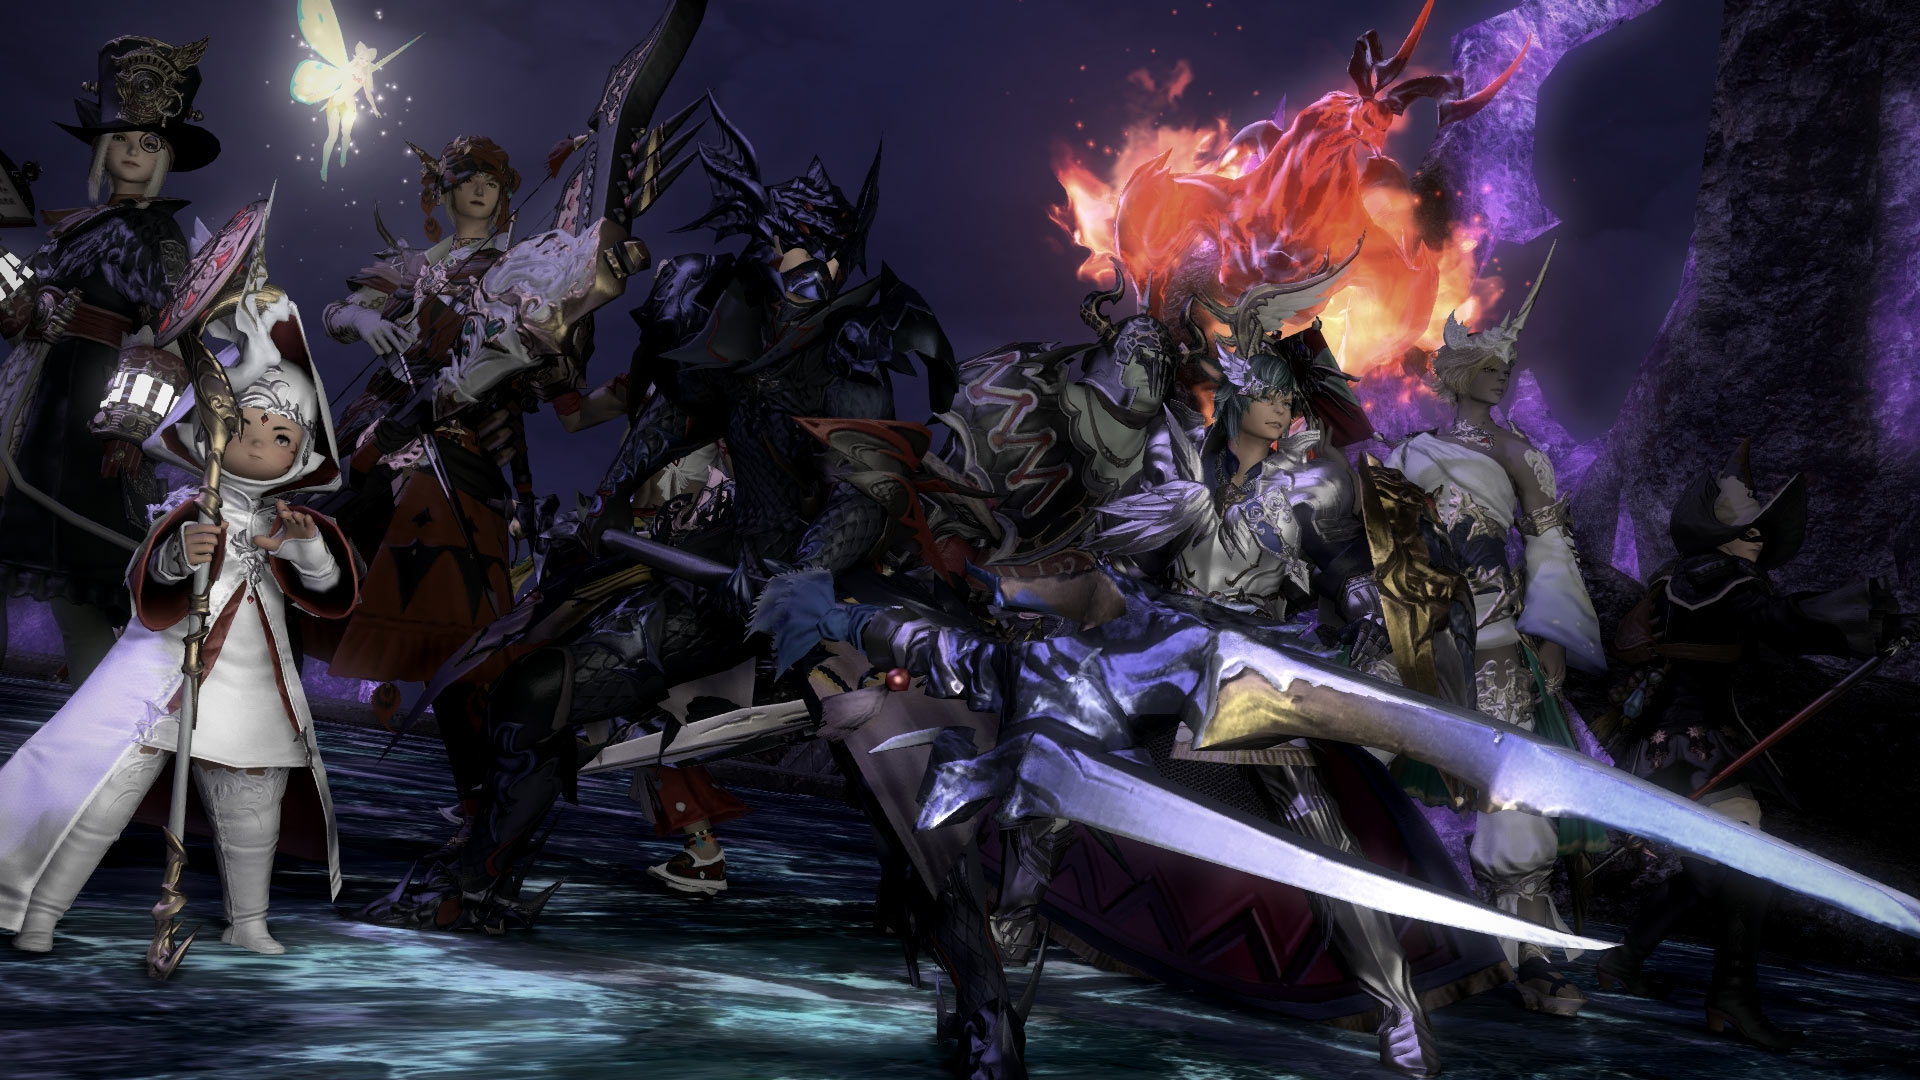 final fantasy 14 is a similar game to sword art online